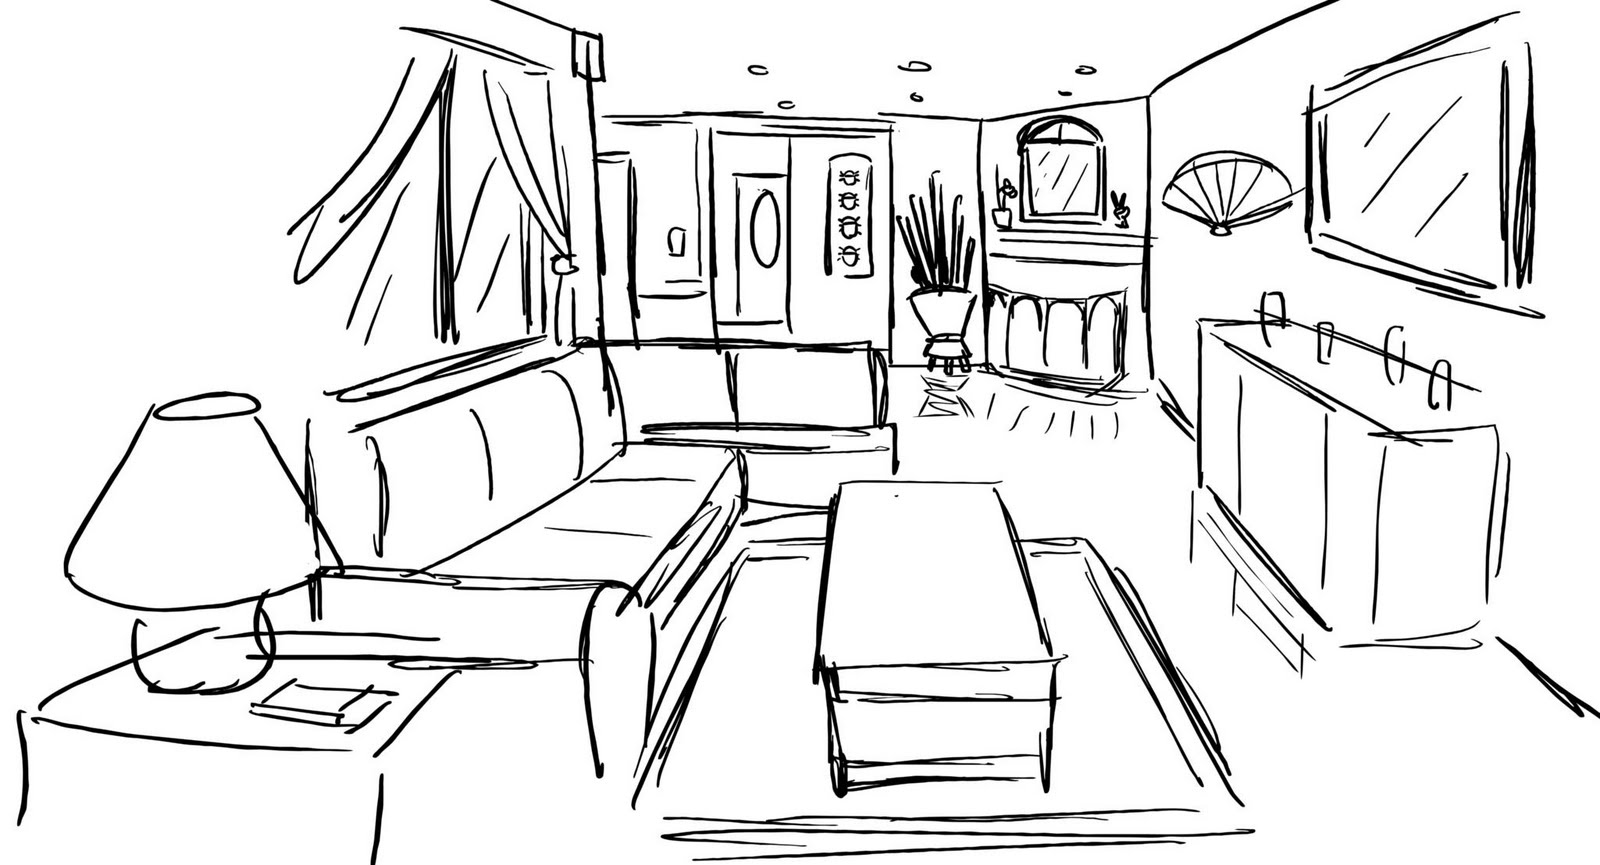 Dave au 39 s stories and doodles house for Interior design ideas of drawing room